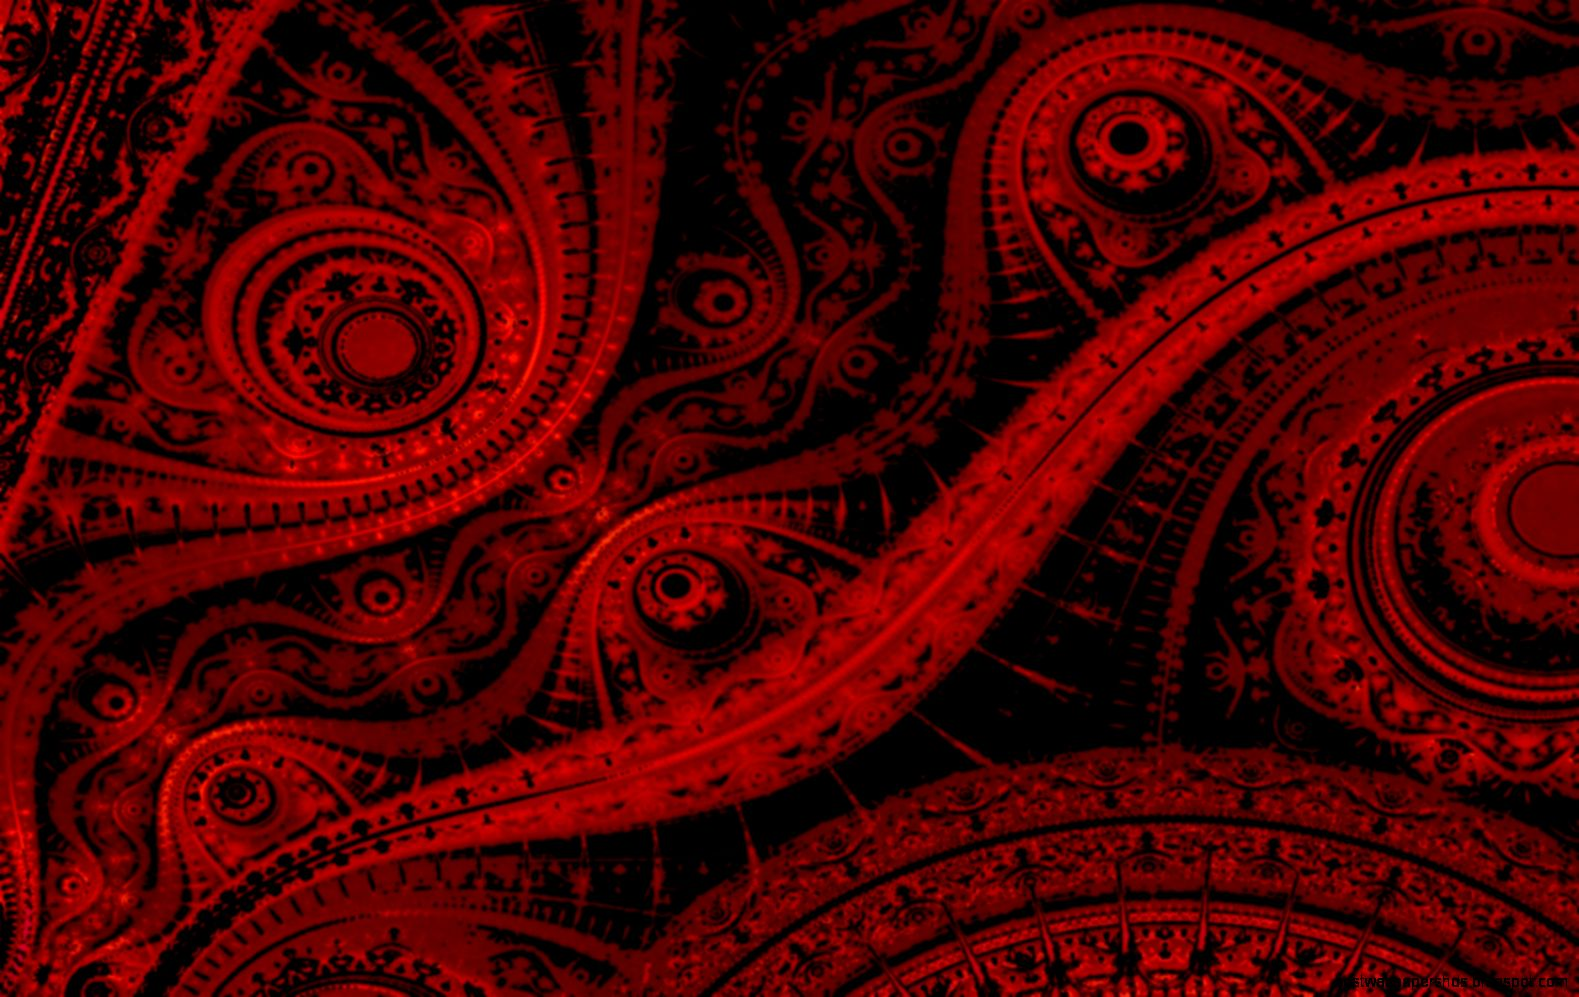 Red Abstract Design Wallpaper